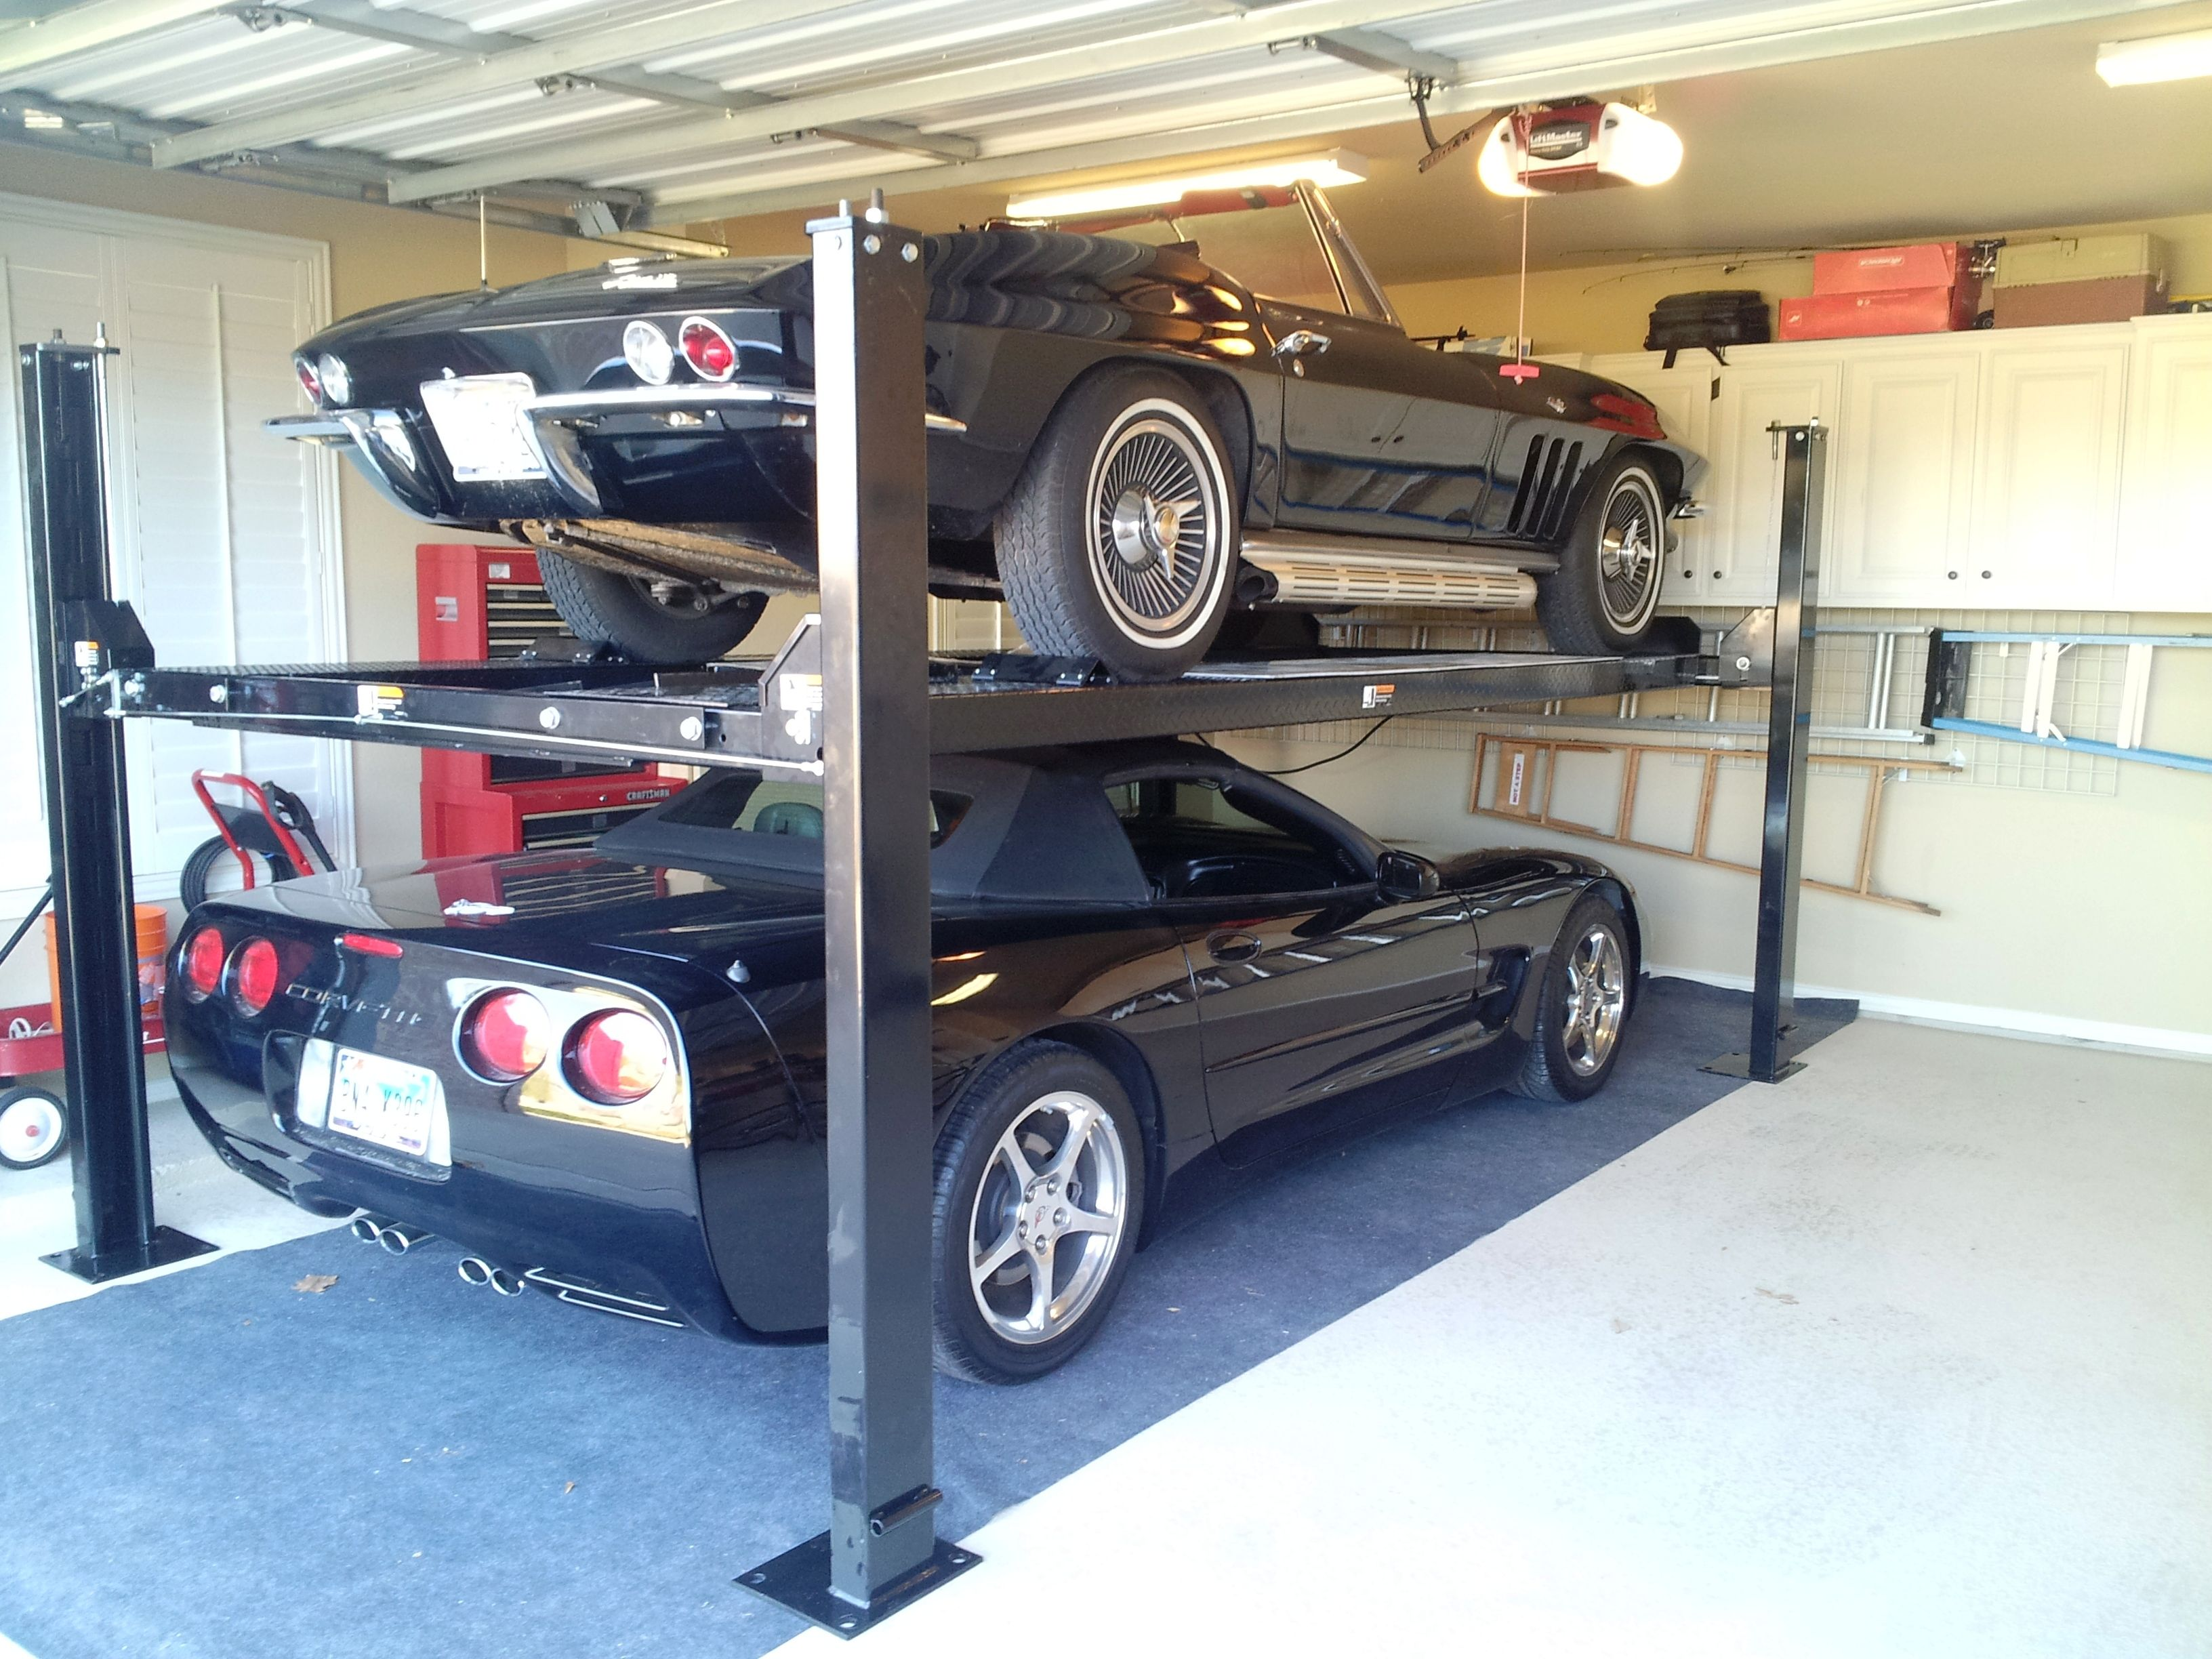 Car Lift For Home Garage: Pin By Zach Crenshaw On For The Garage